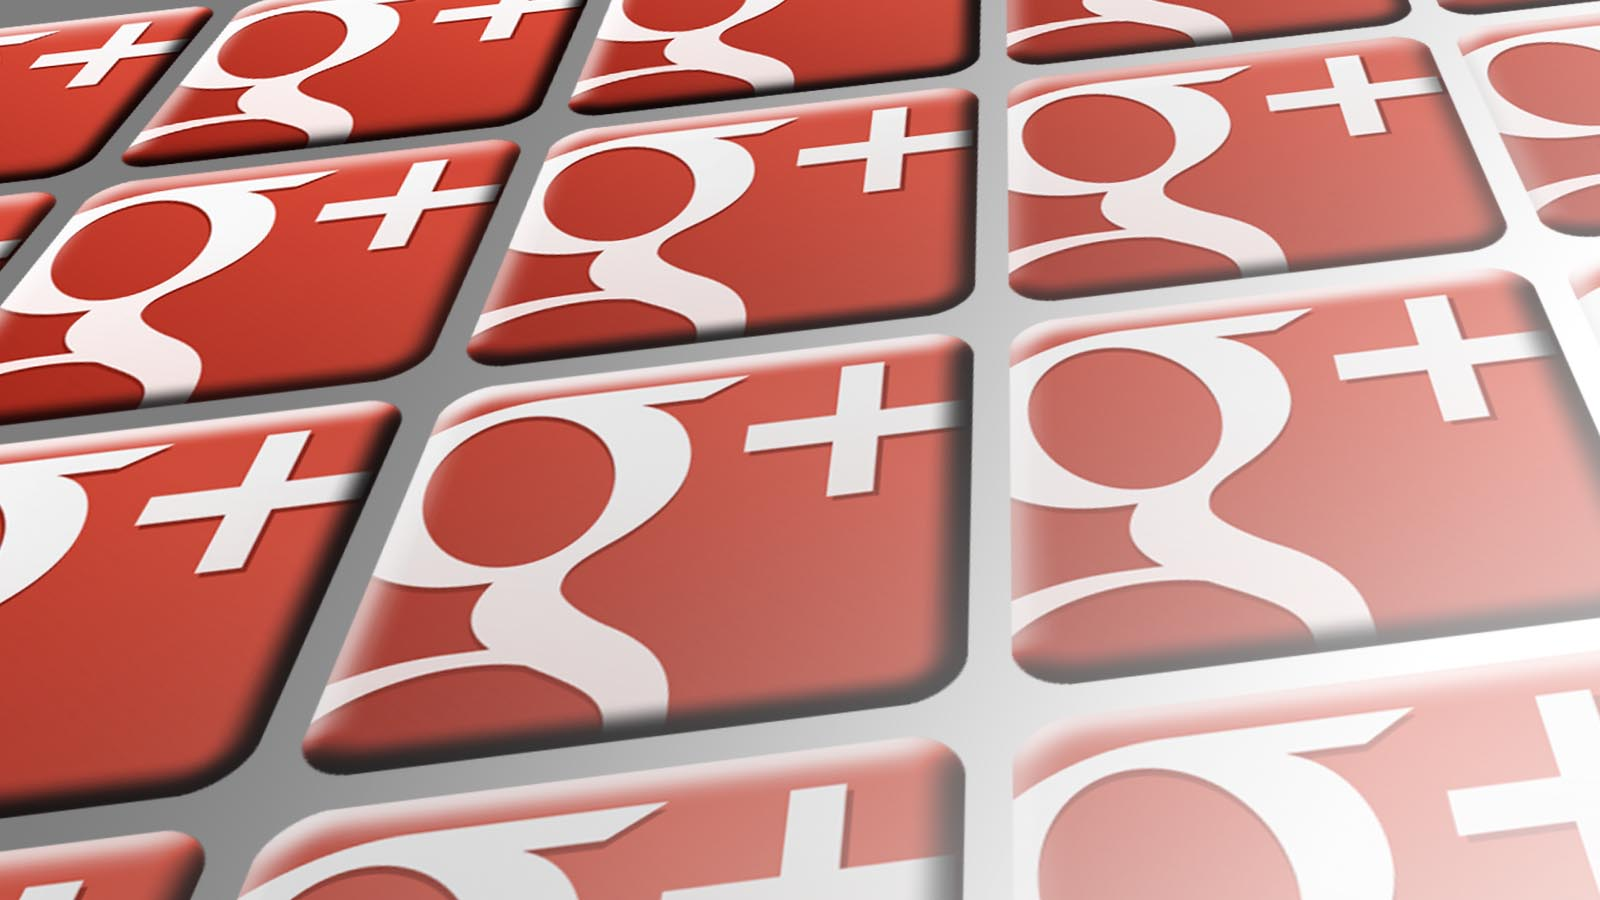 How to Make Google Plus Work for You - Image 2